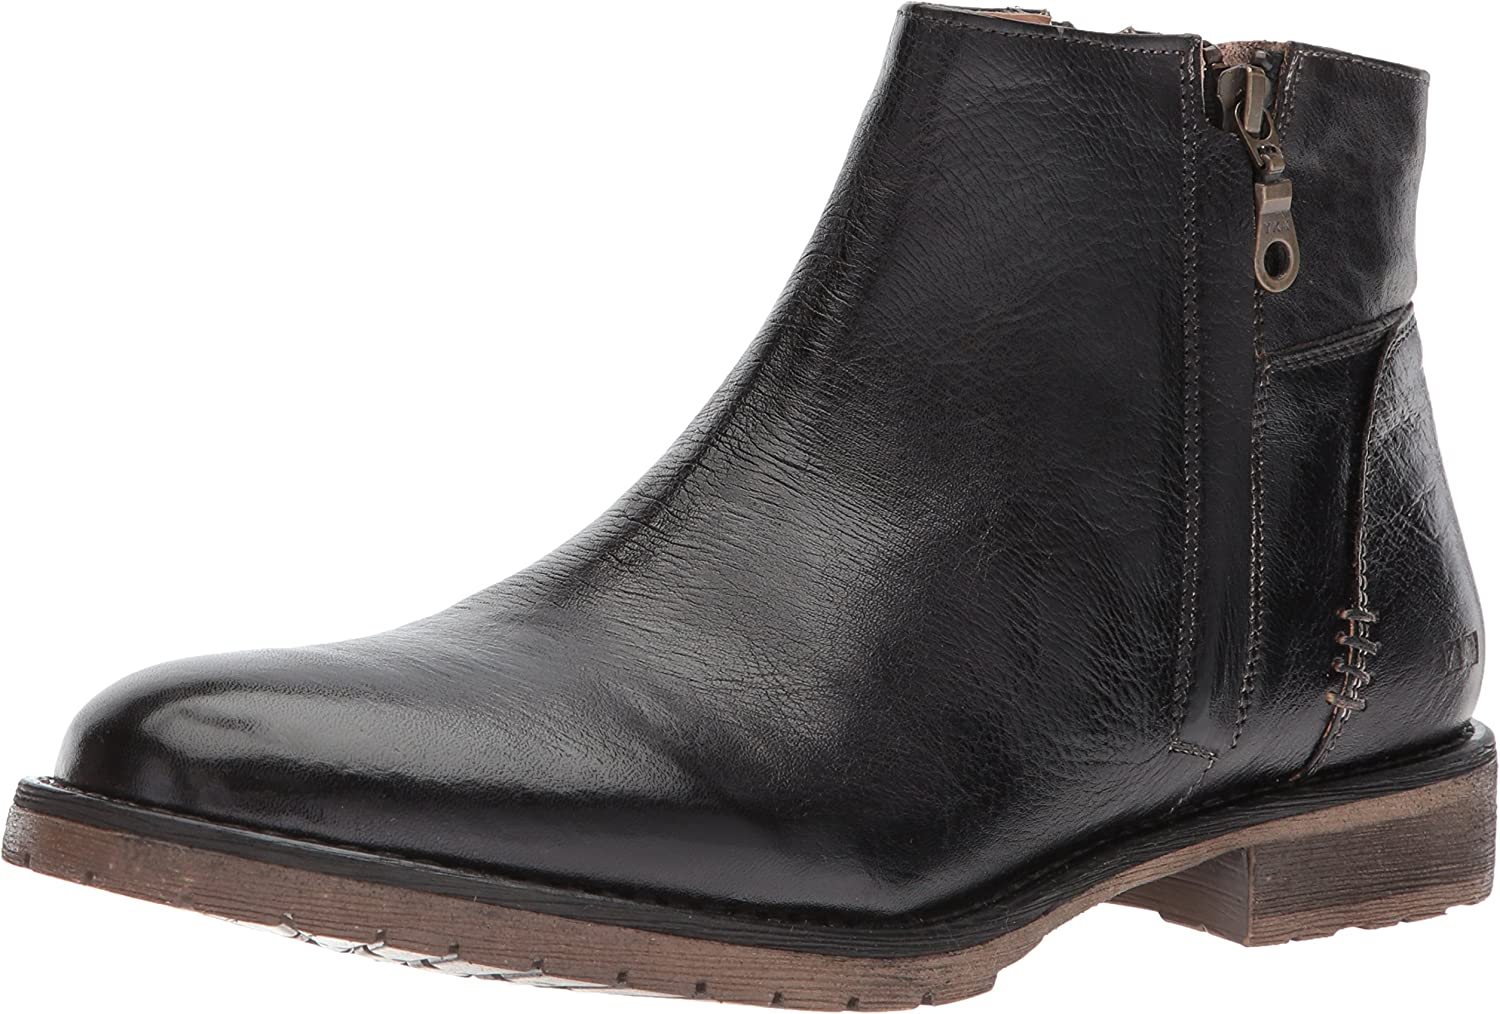 Bed Stu Men's Billy Ankle Boot